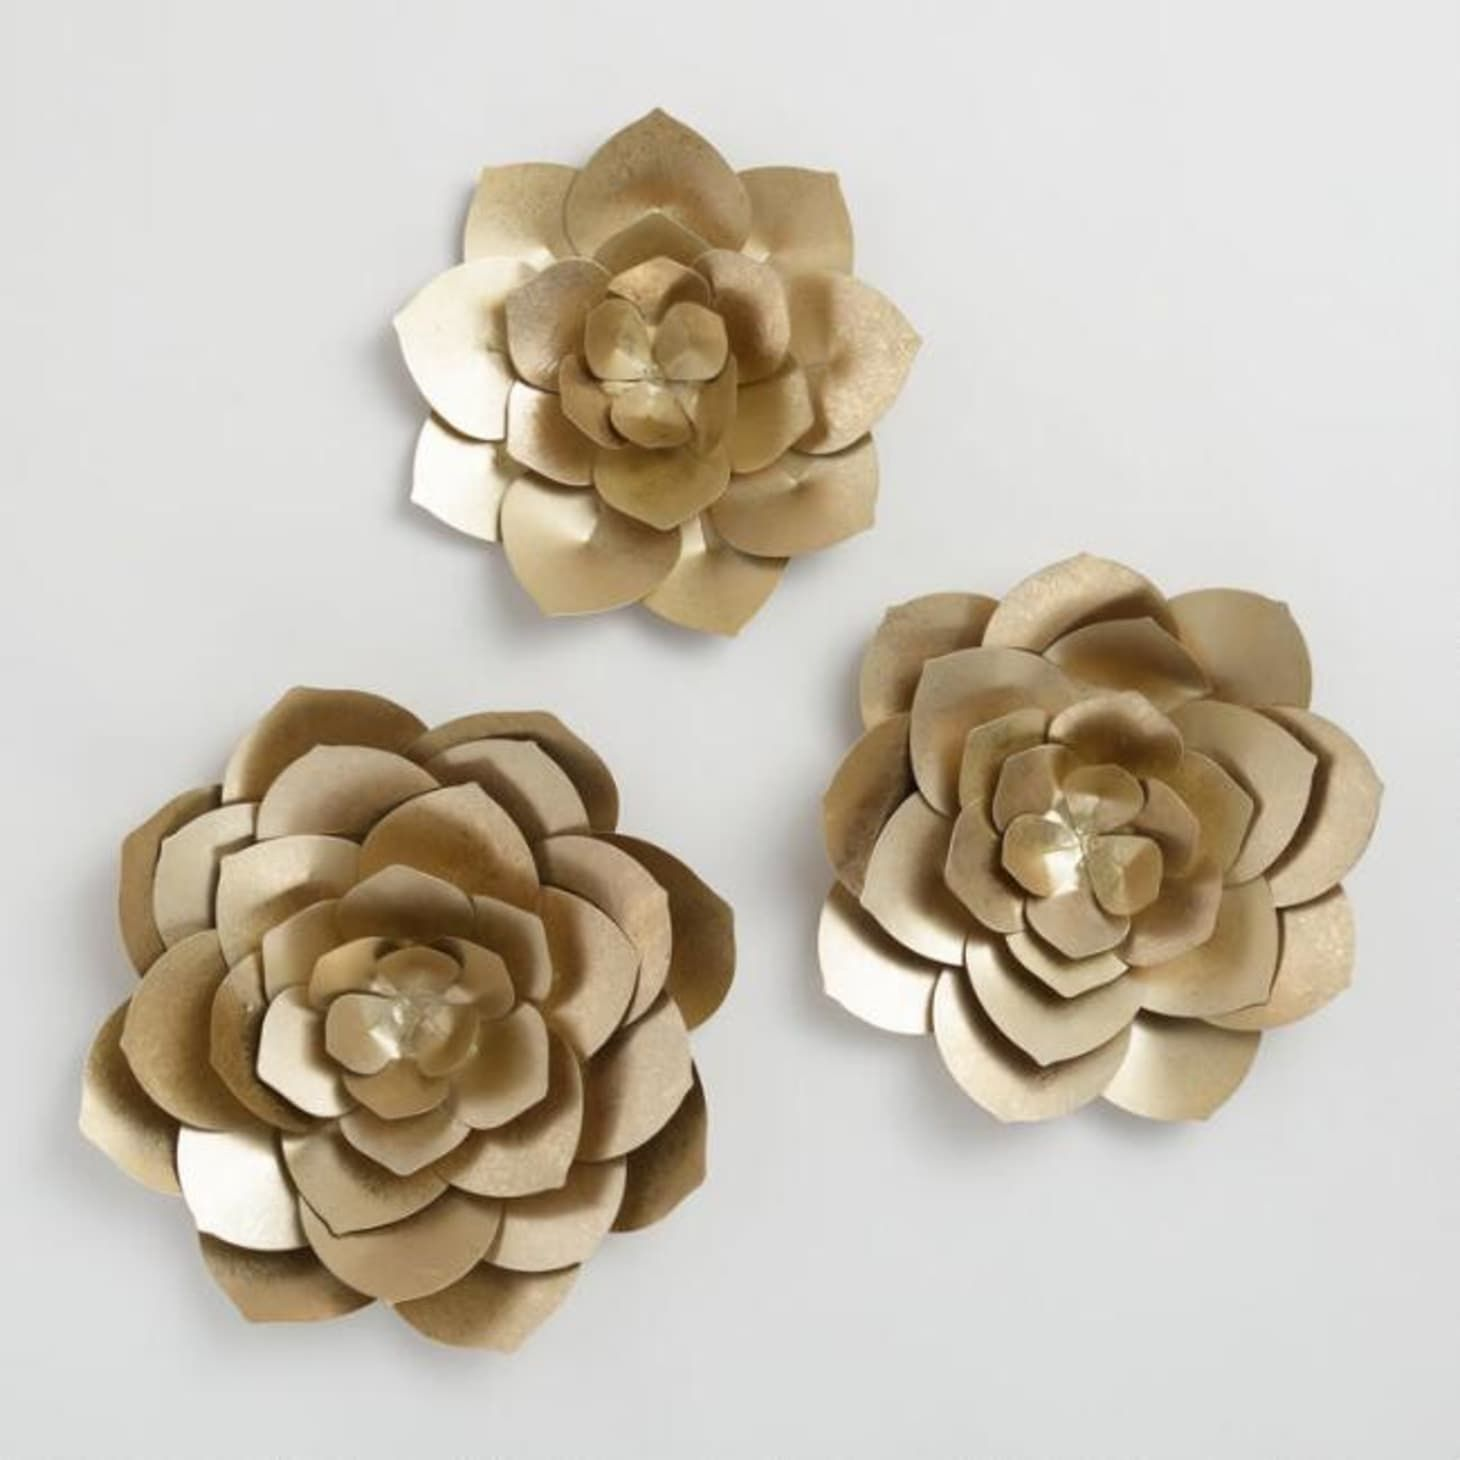 8 Totally Luxe Unconventional Wall Art Finds Starting At 17 Metal Flower Wall Decor Metal Wall Flowers Gold Wall Art